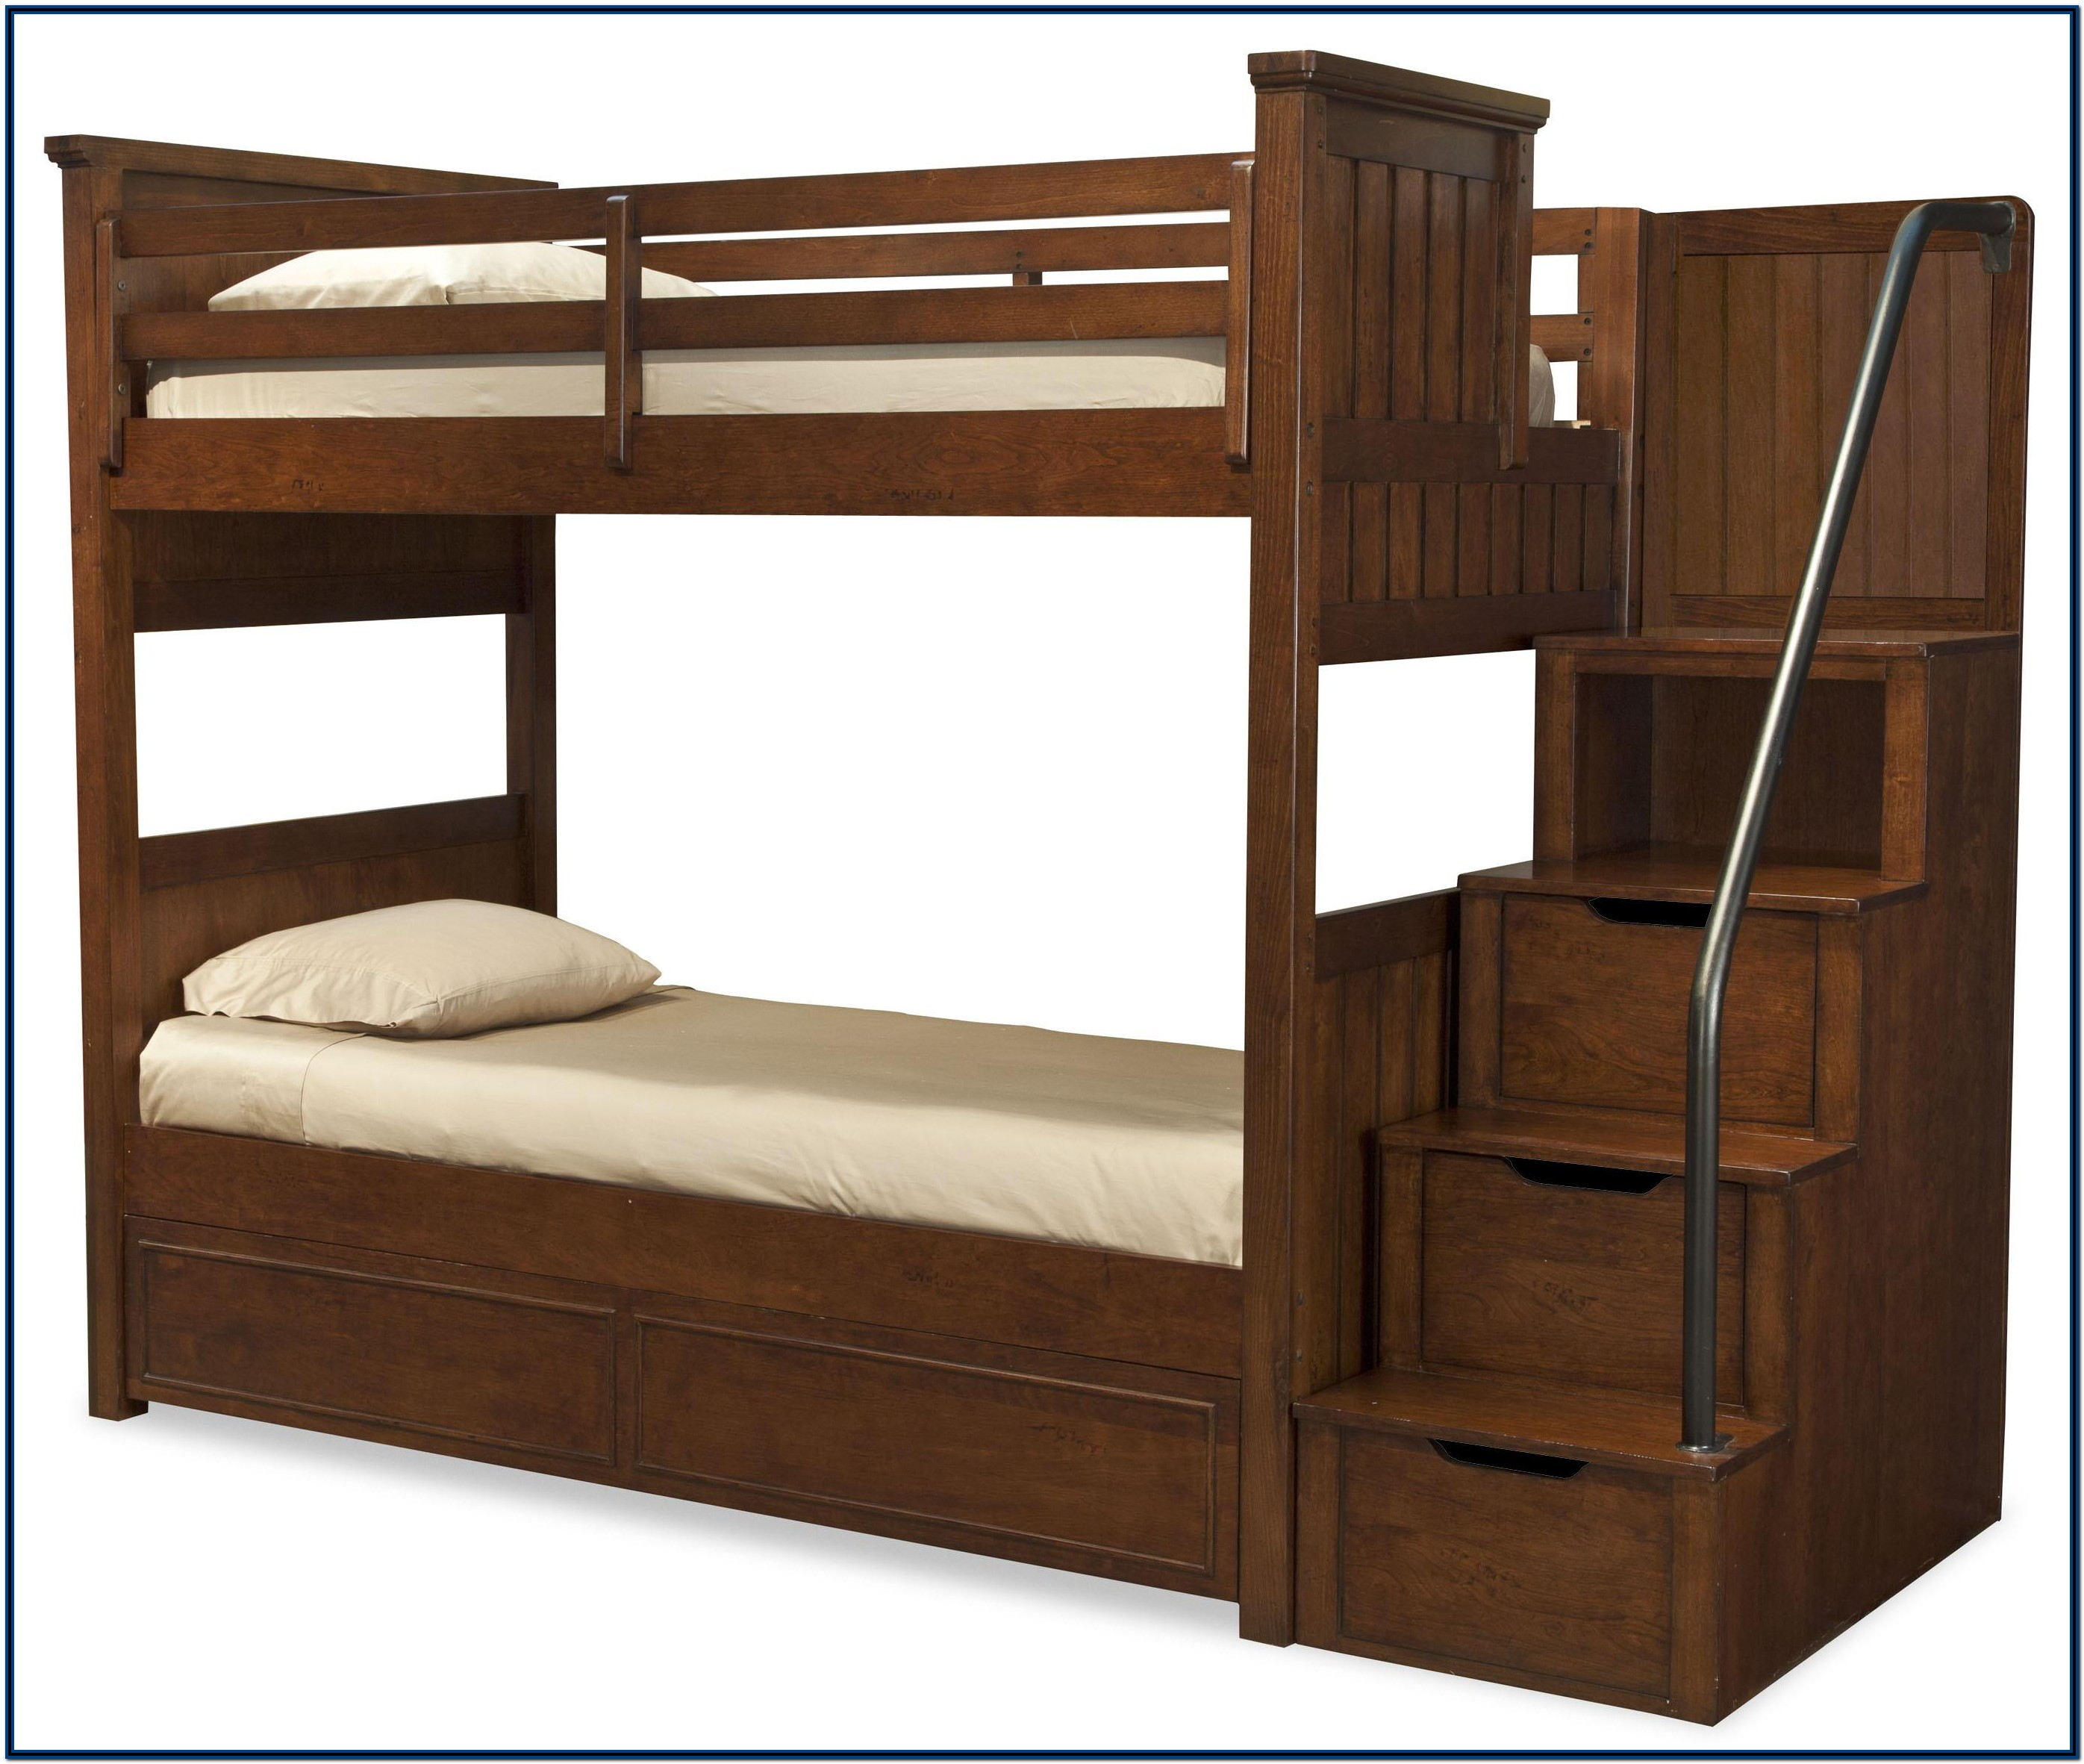 Bunk Bed With Storage Stairs Plans